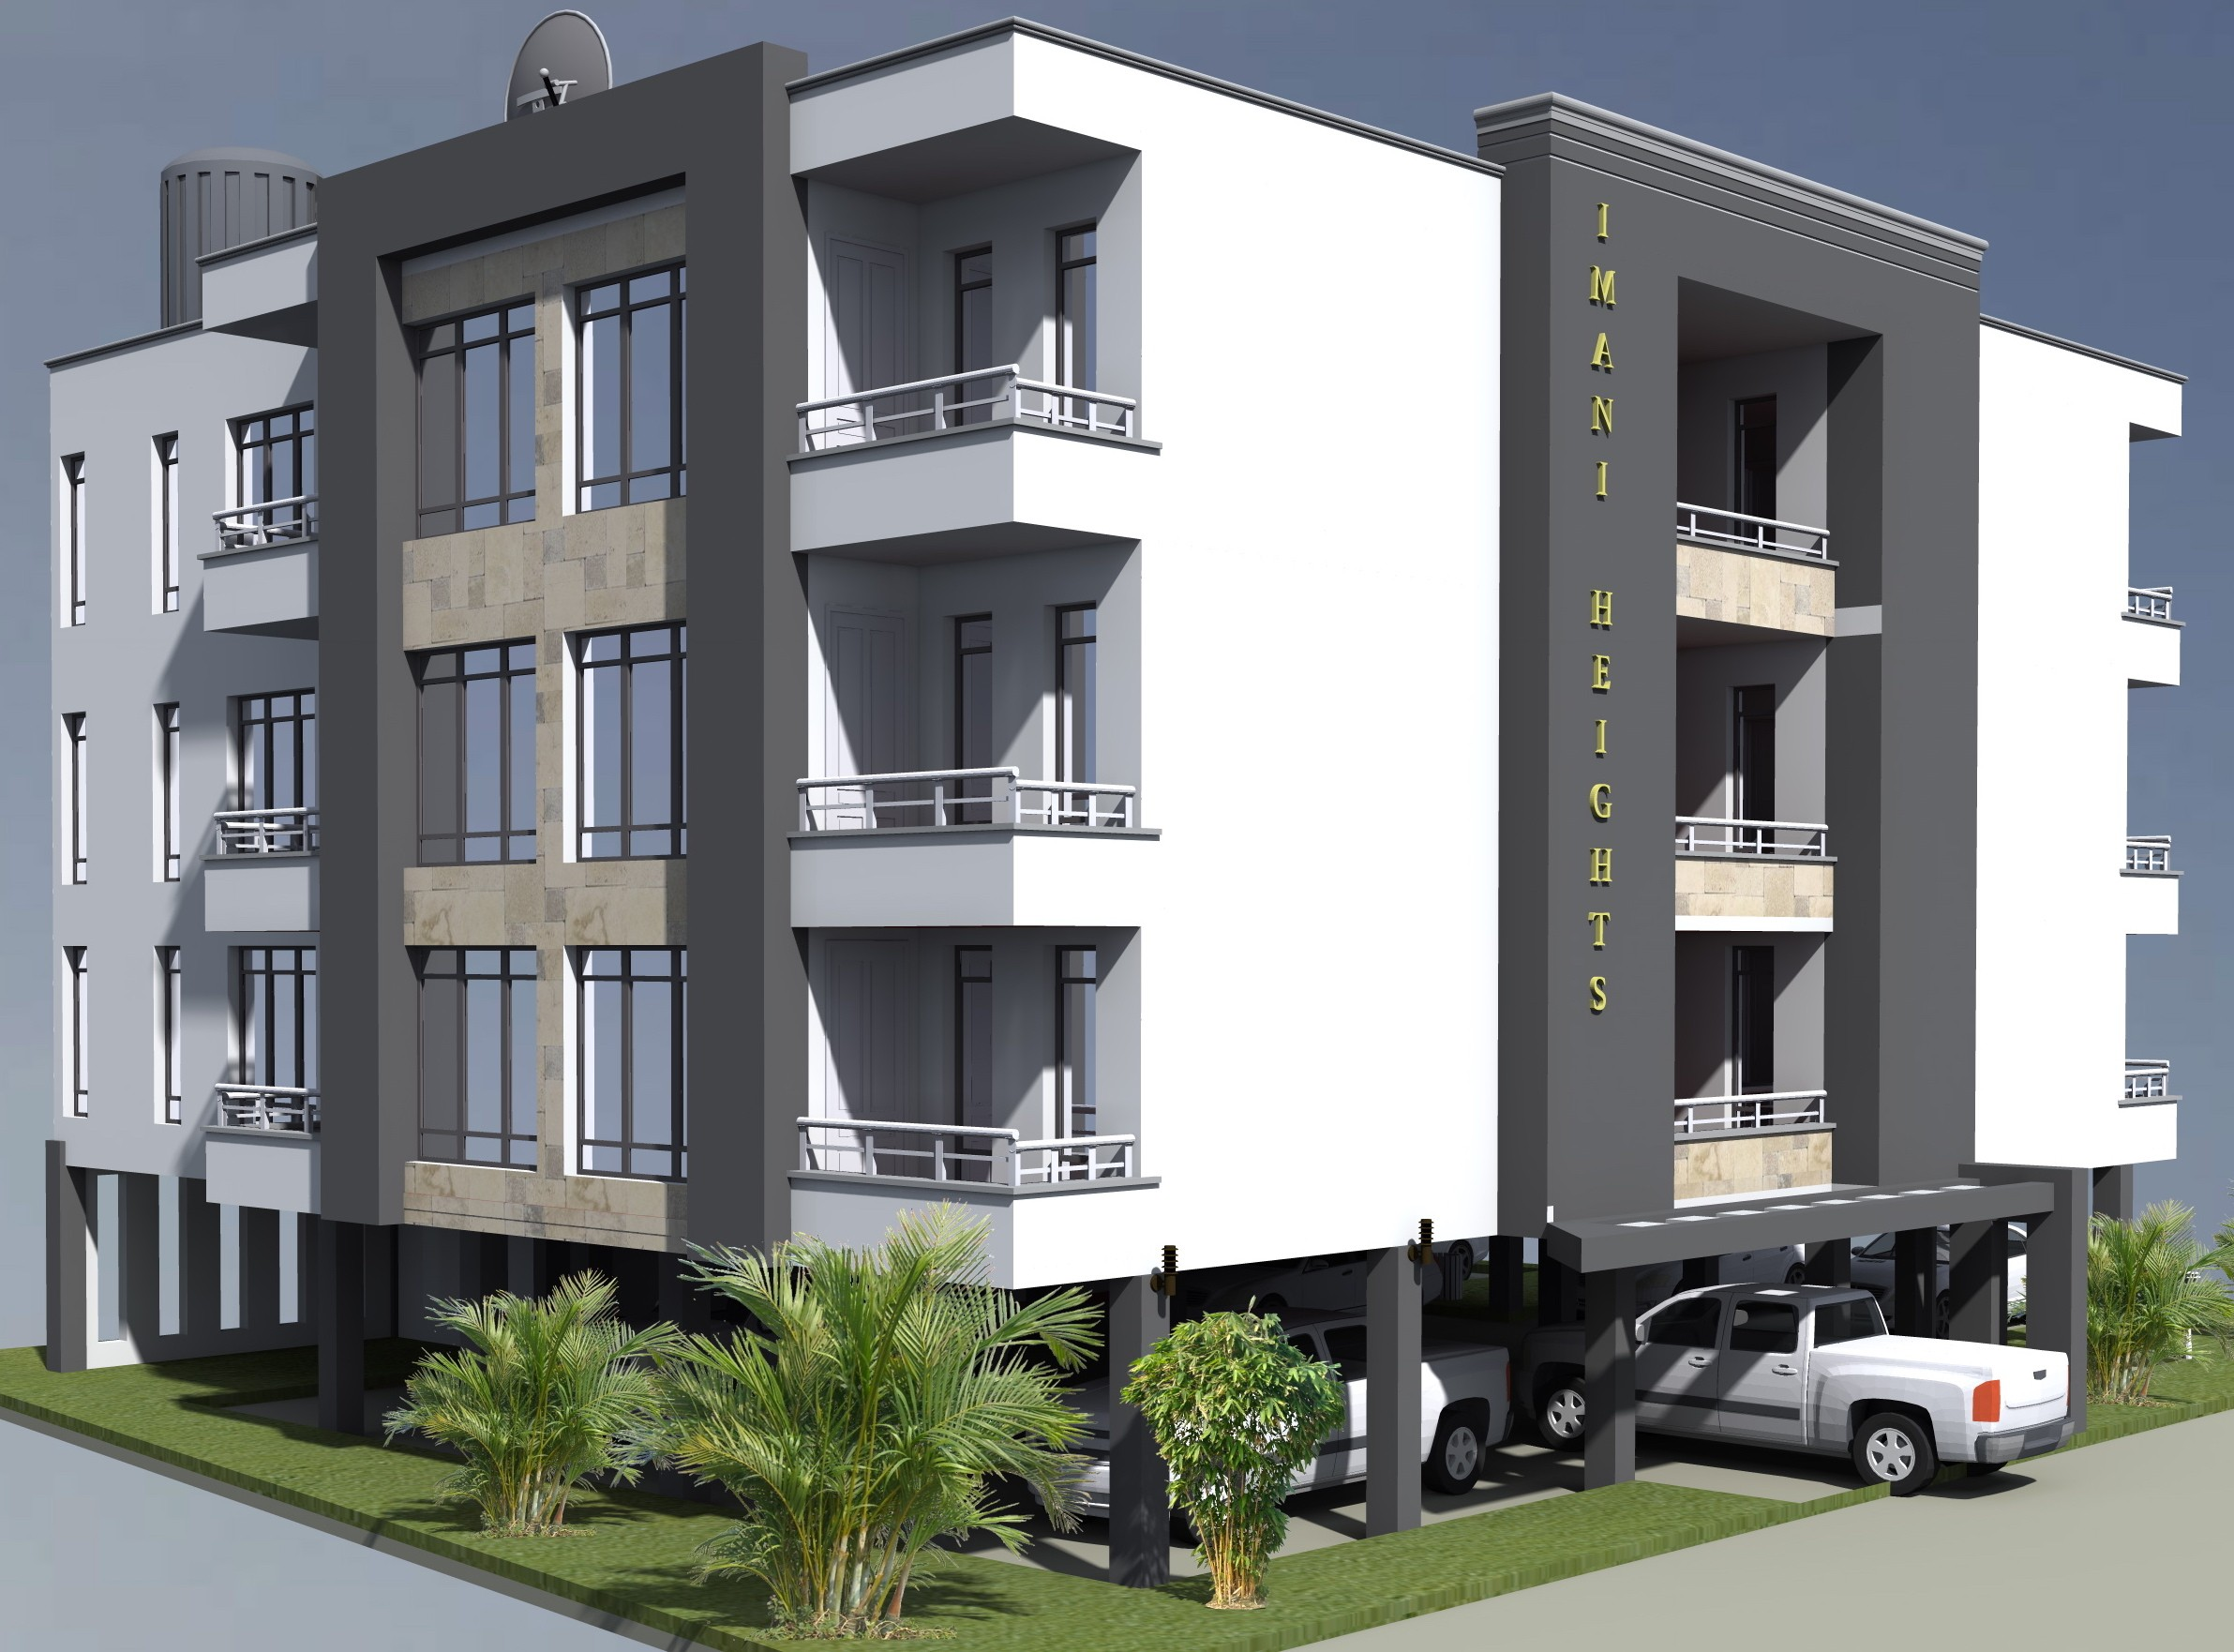 PROPOSED SERVICED APARTMENT